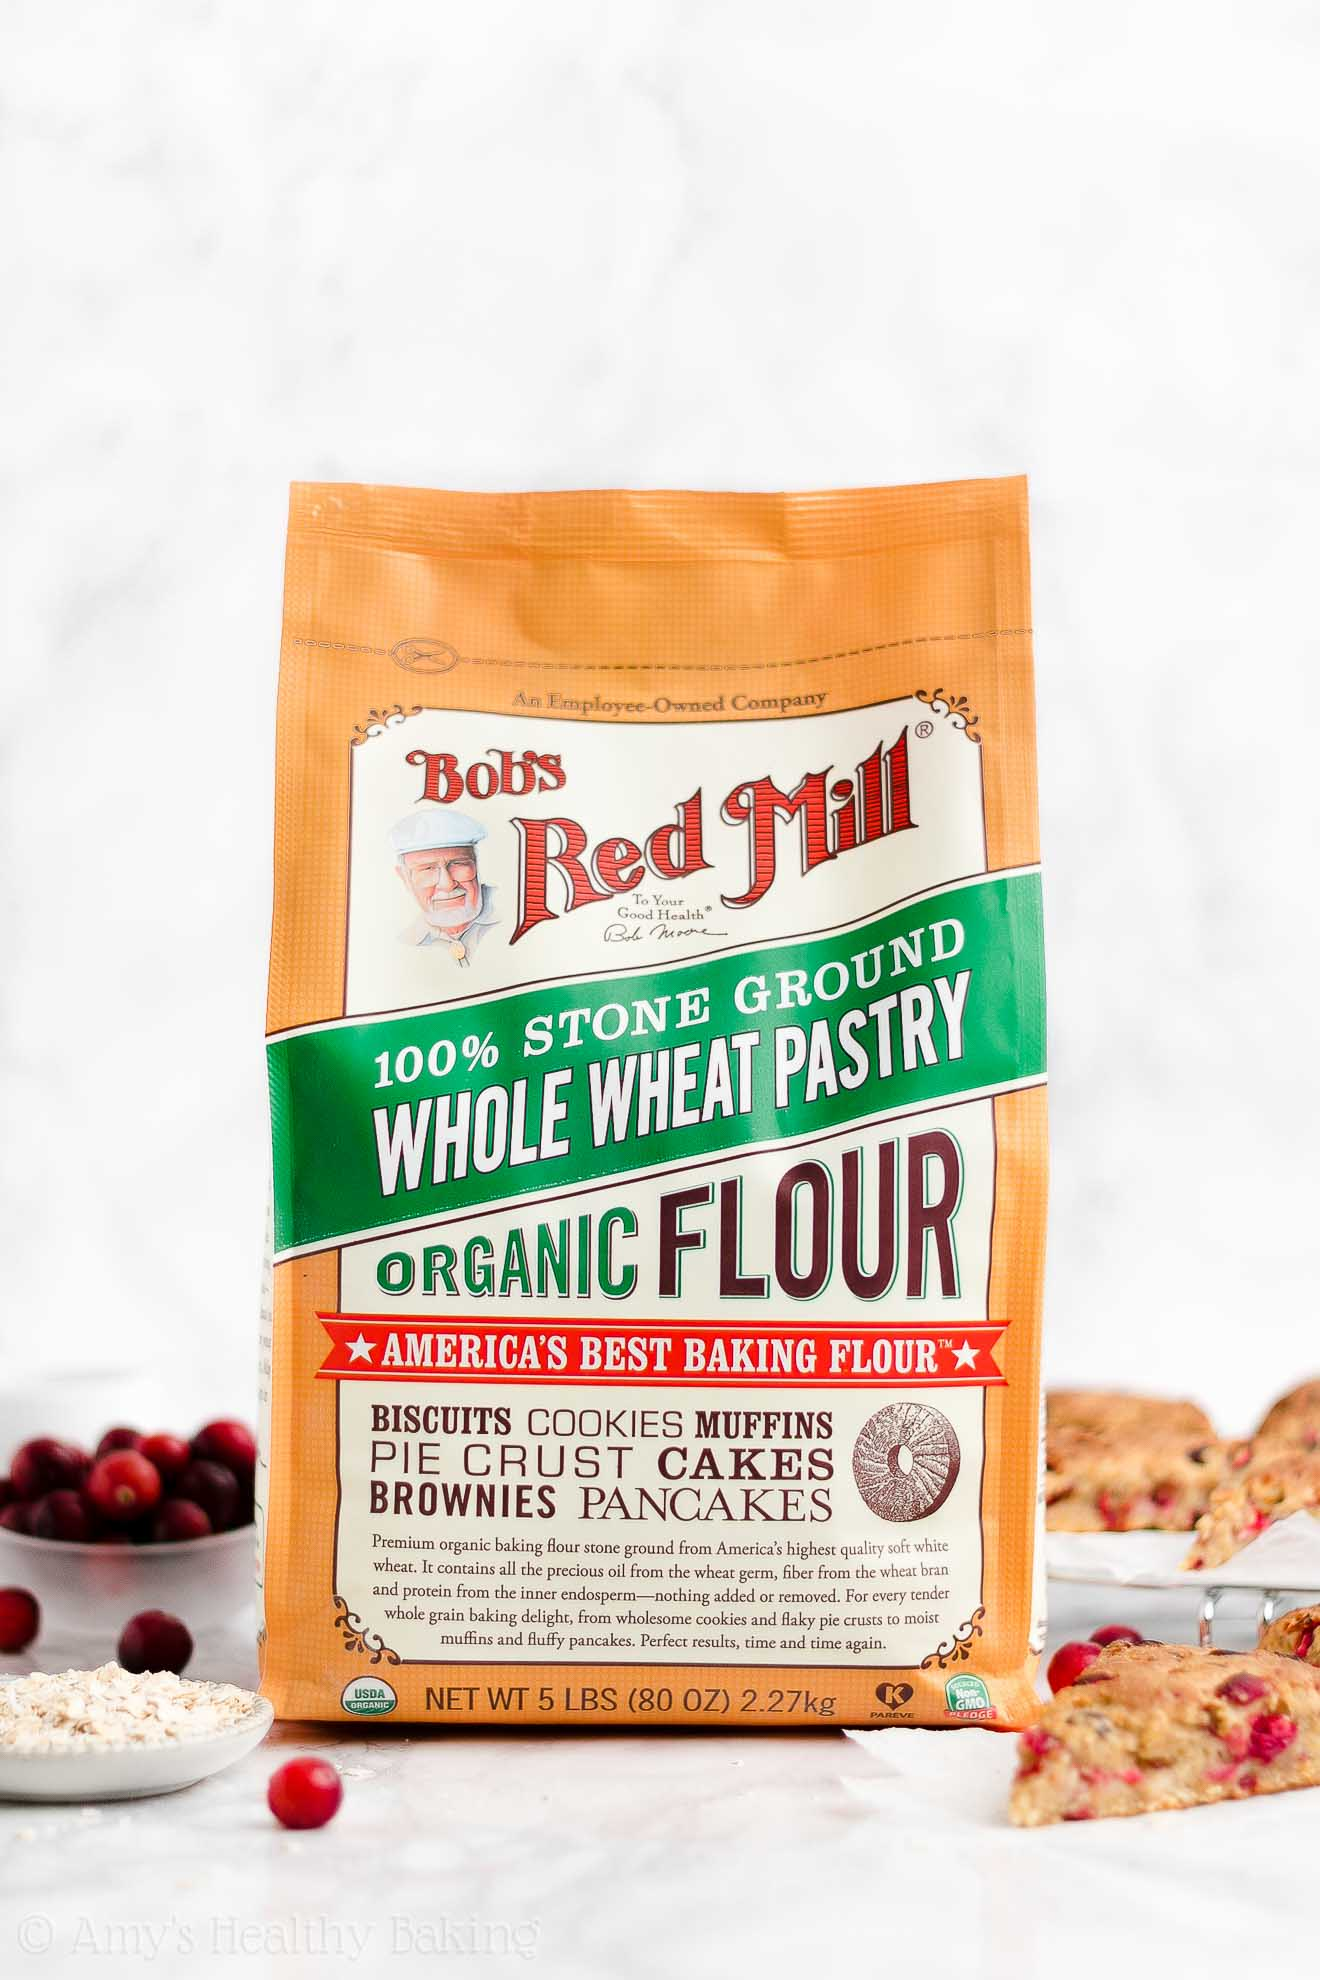 5-Pound Bag of Bob's Red Mill Organic Quick Whole Wheat Pastry Flour